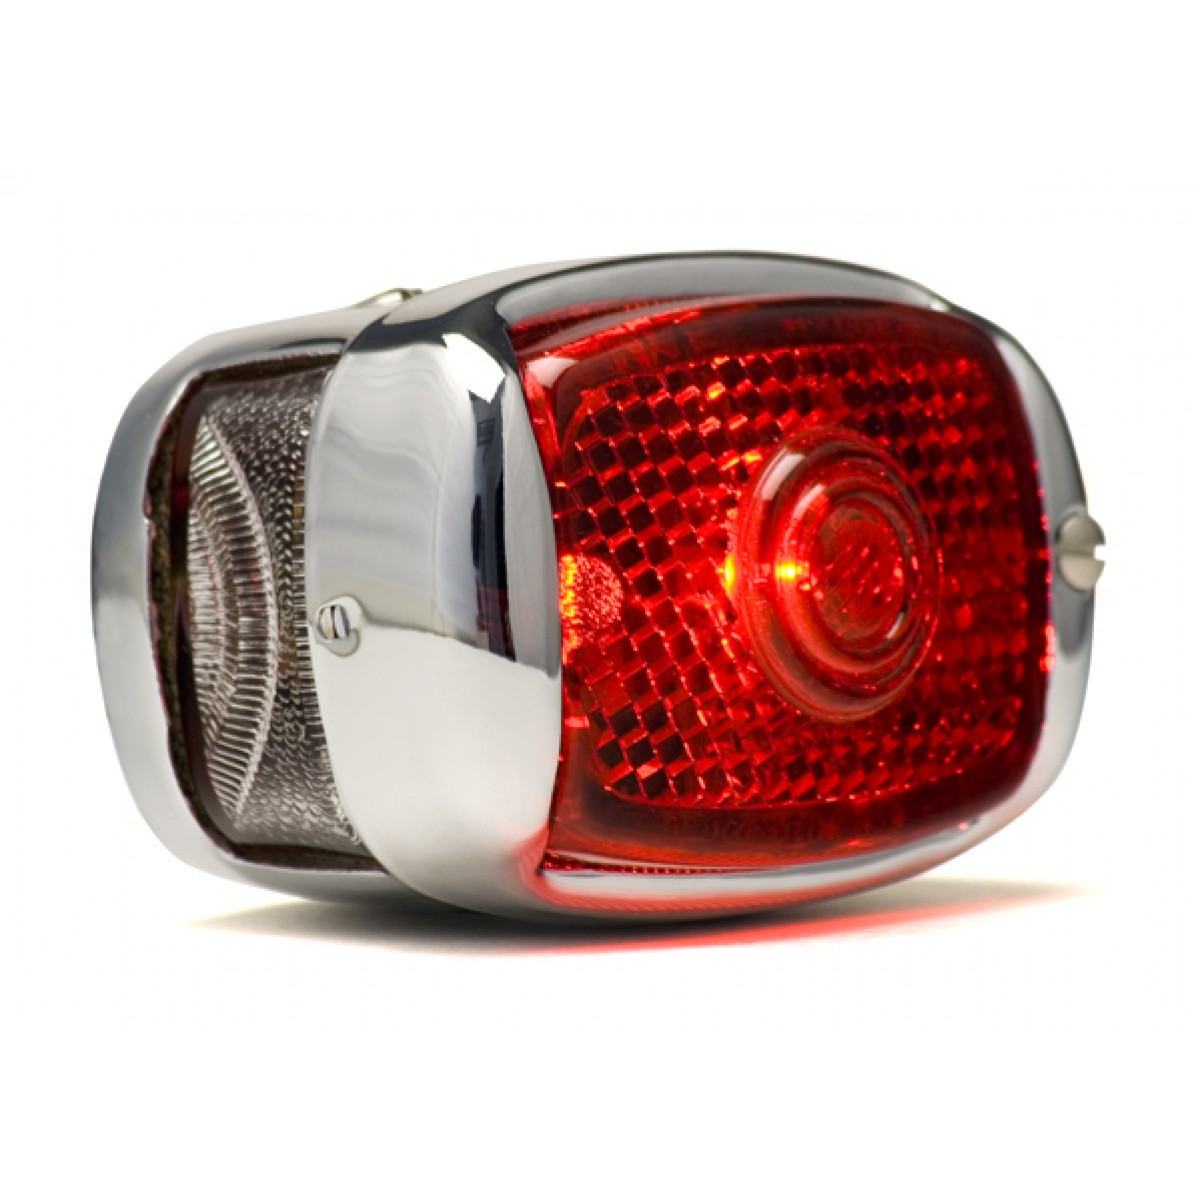 Lat Nr330 1940 1953 Chevy Pickup Led Tail Lights Dakota Digital Lat Nr330 Chevy Truck Tail Lights